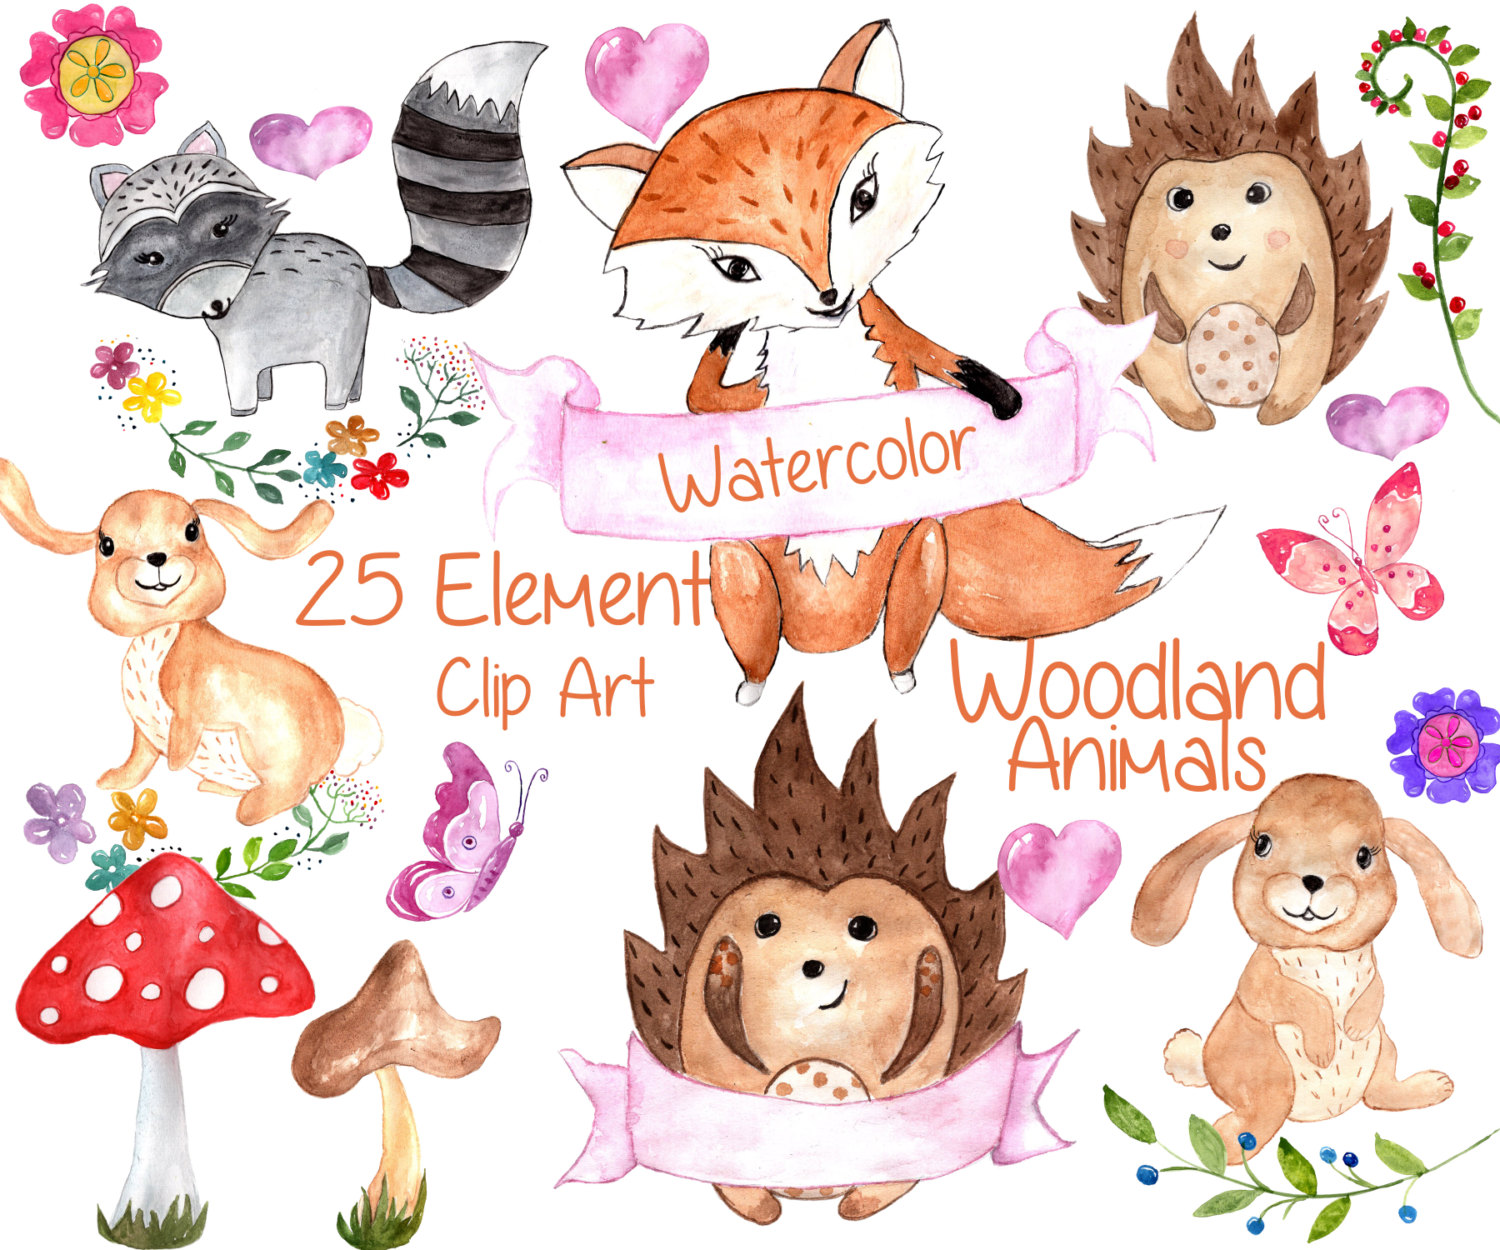 Vintage chic animal clipart jpg download Bunnies clipart shabby chic, Bunnies shabby chic Transparent ... jpg download